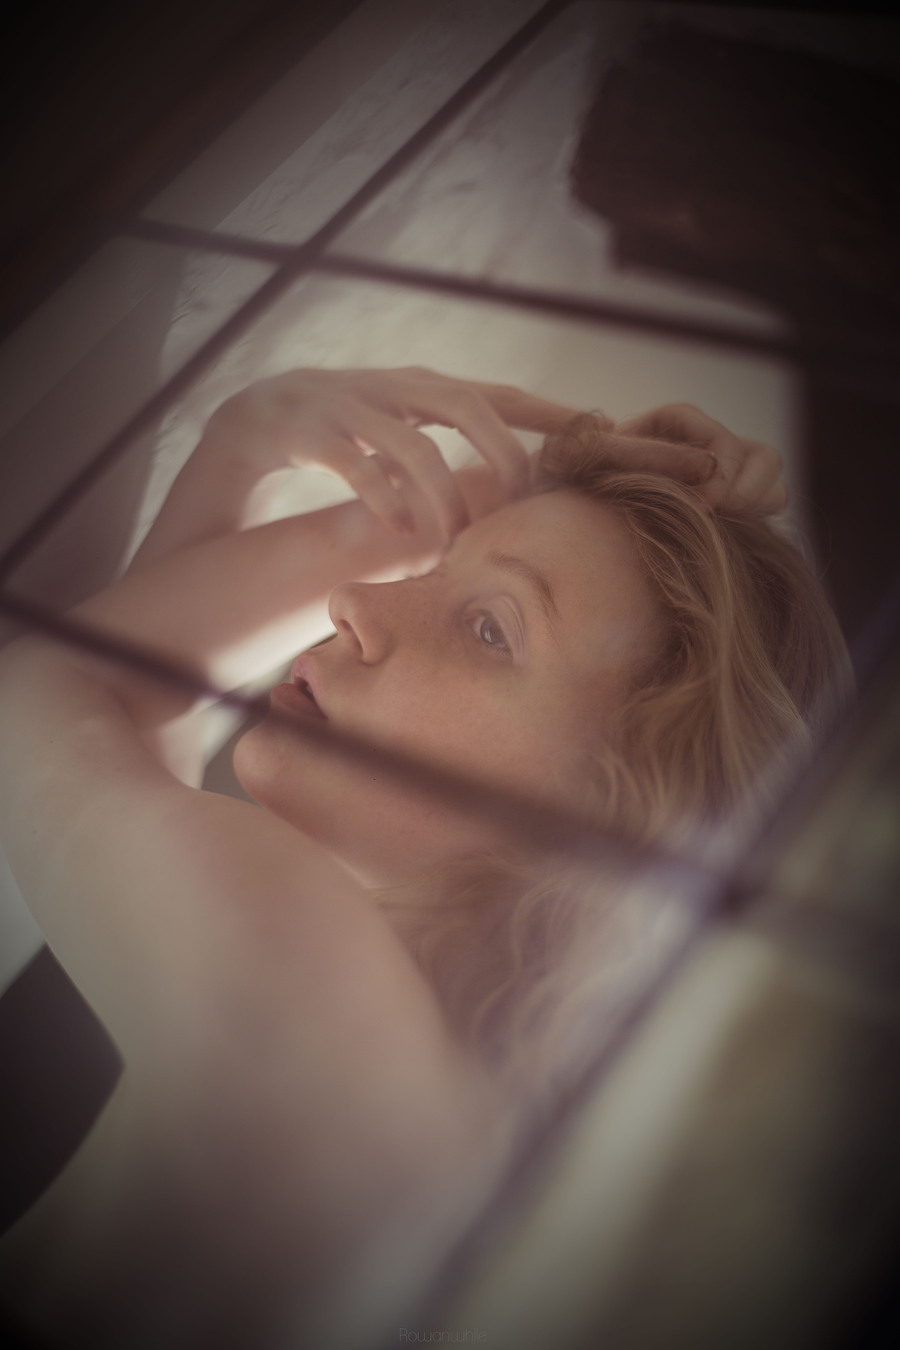 Through the Glass Door / Photography by Rowan While, Model Lulu Lockhart / Uploaded 25th August 2013 @ 10:55 PM